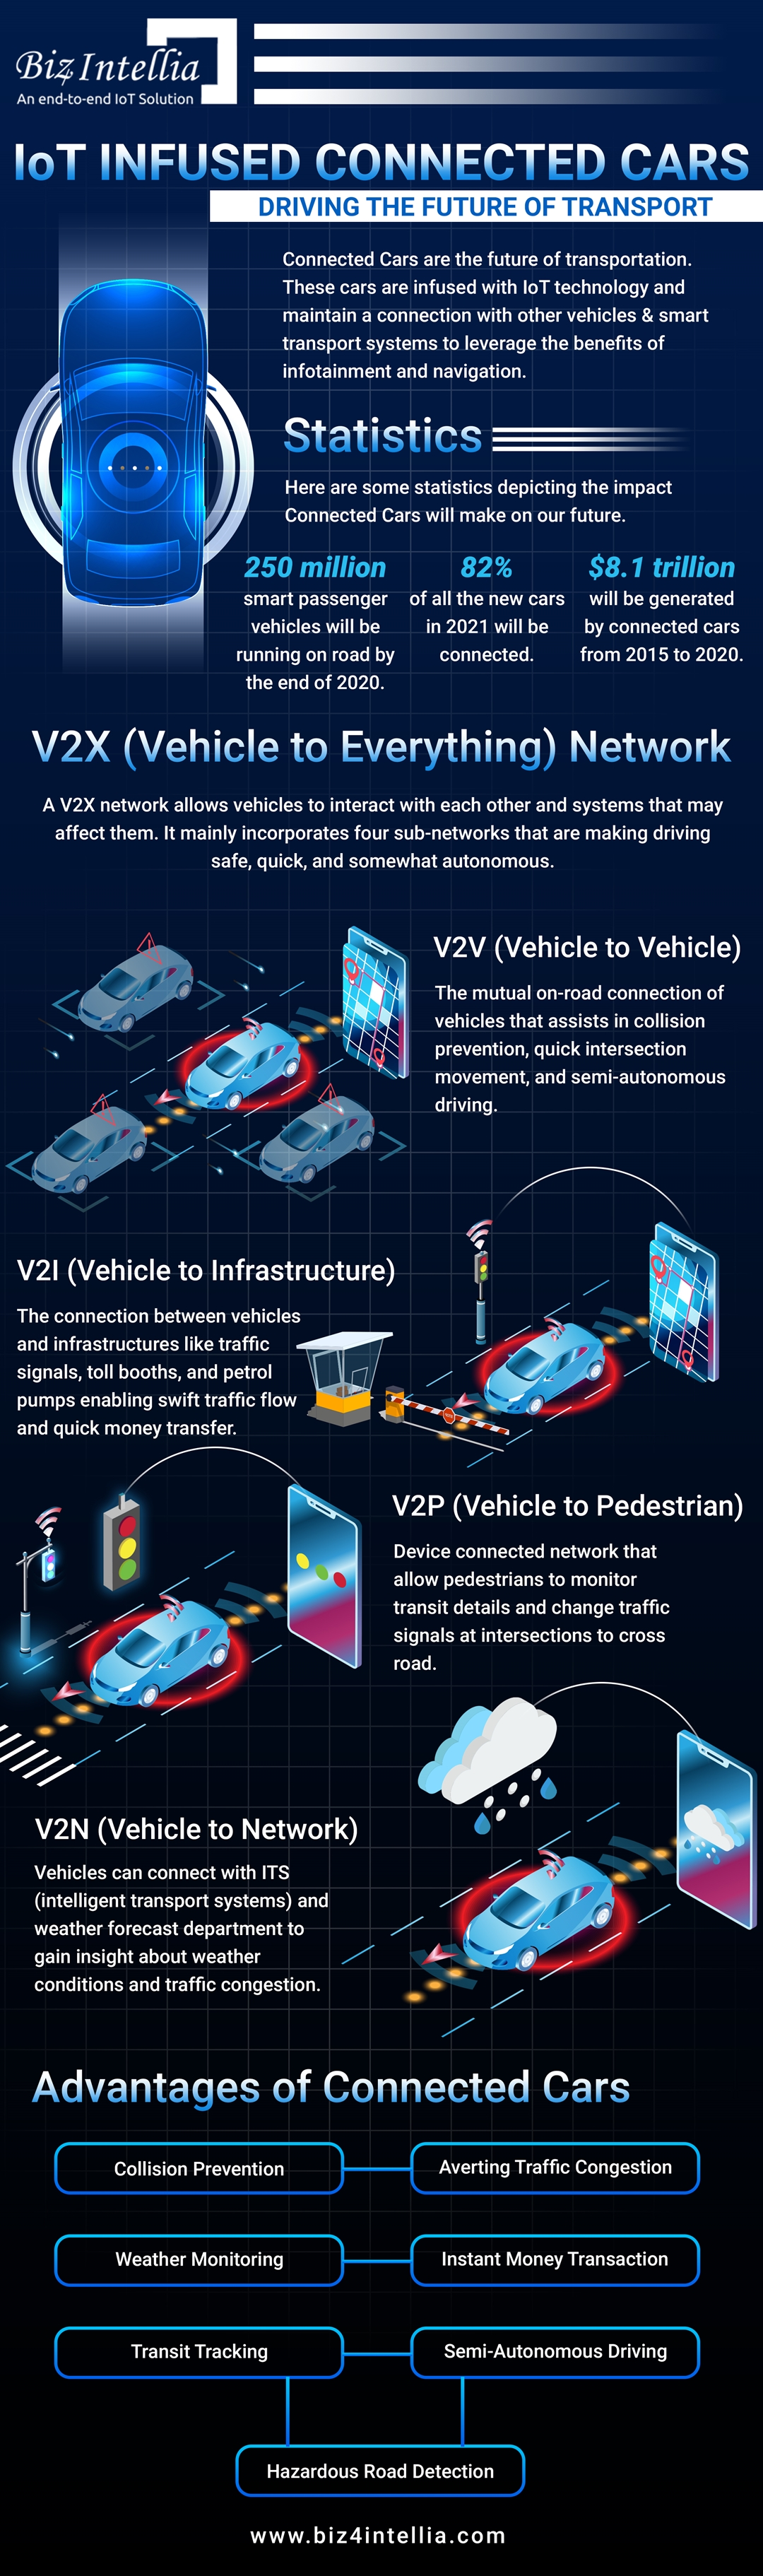 iot-infused-connected-cars-driving-the-future-of-transport